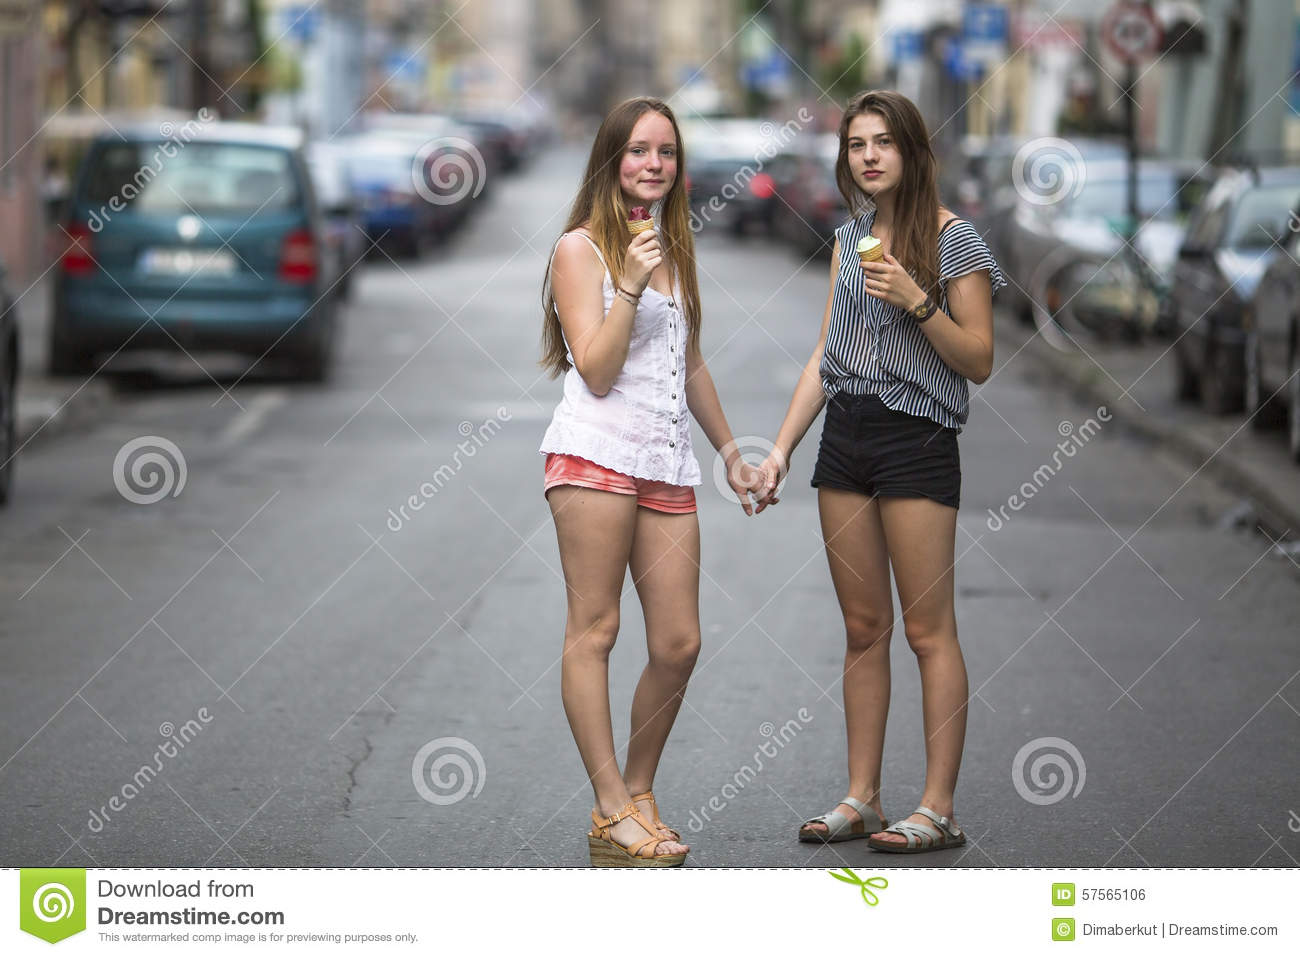 Ice Fall Wallpaper Two Teen Girls With Ice Cream Stand On The Street Holding